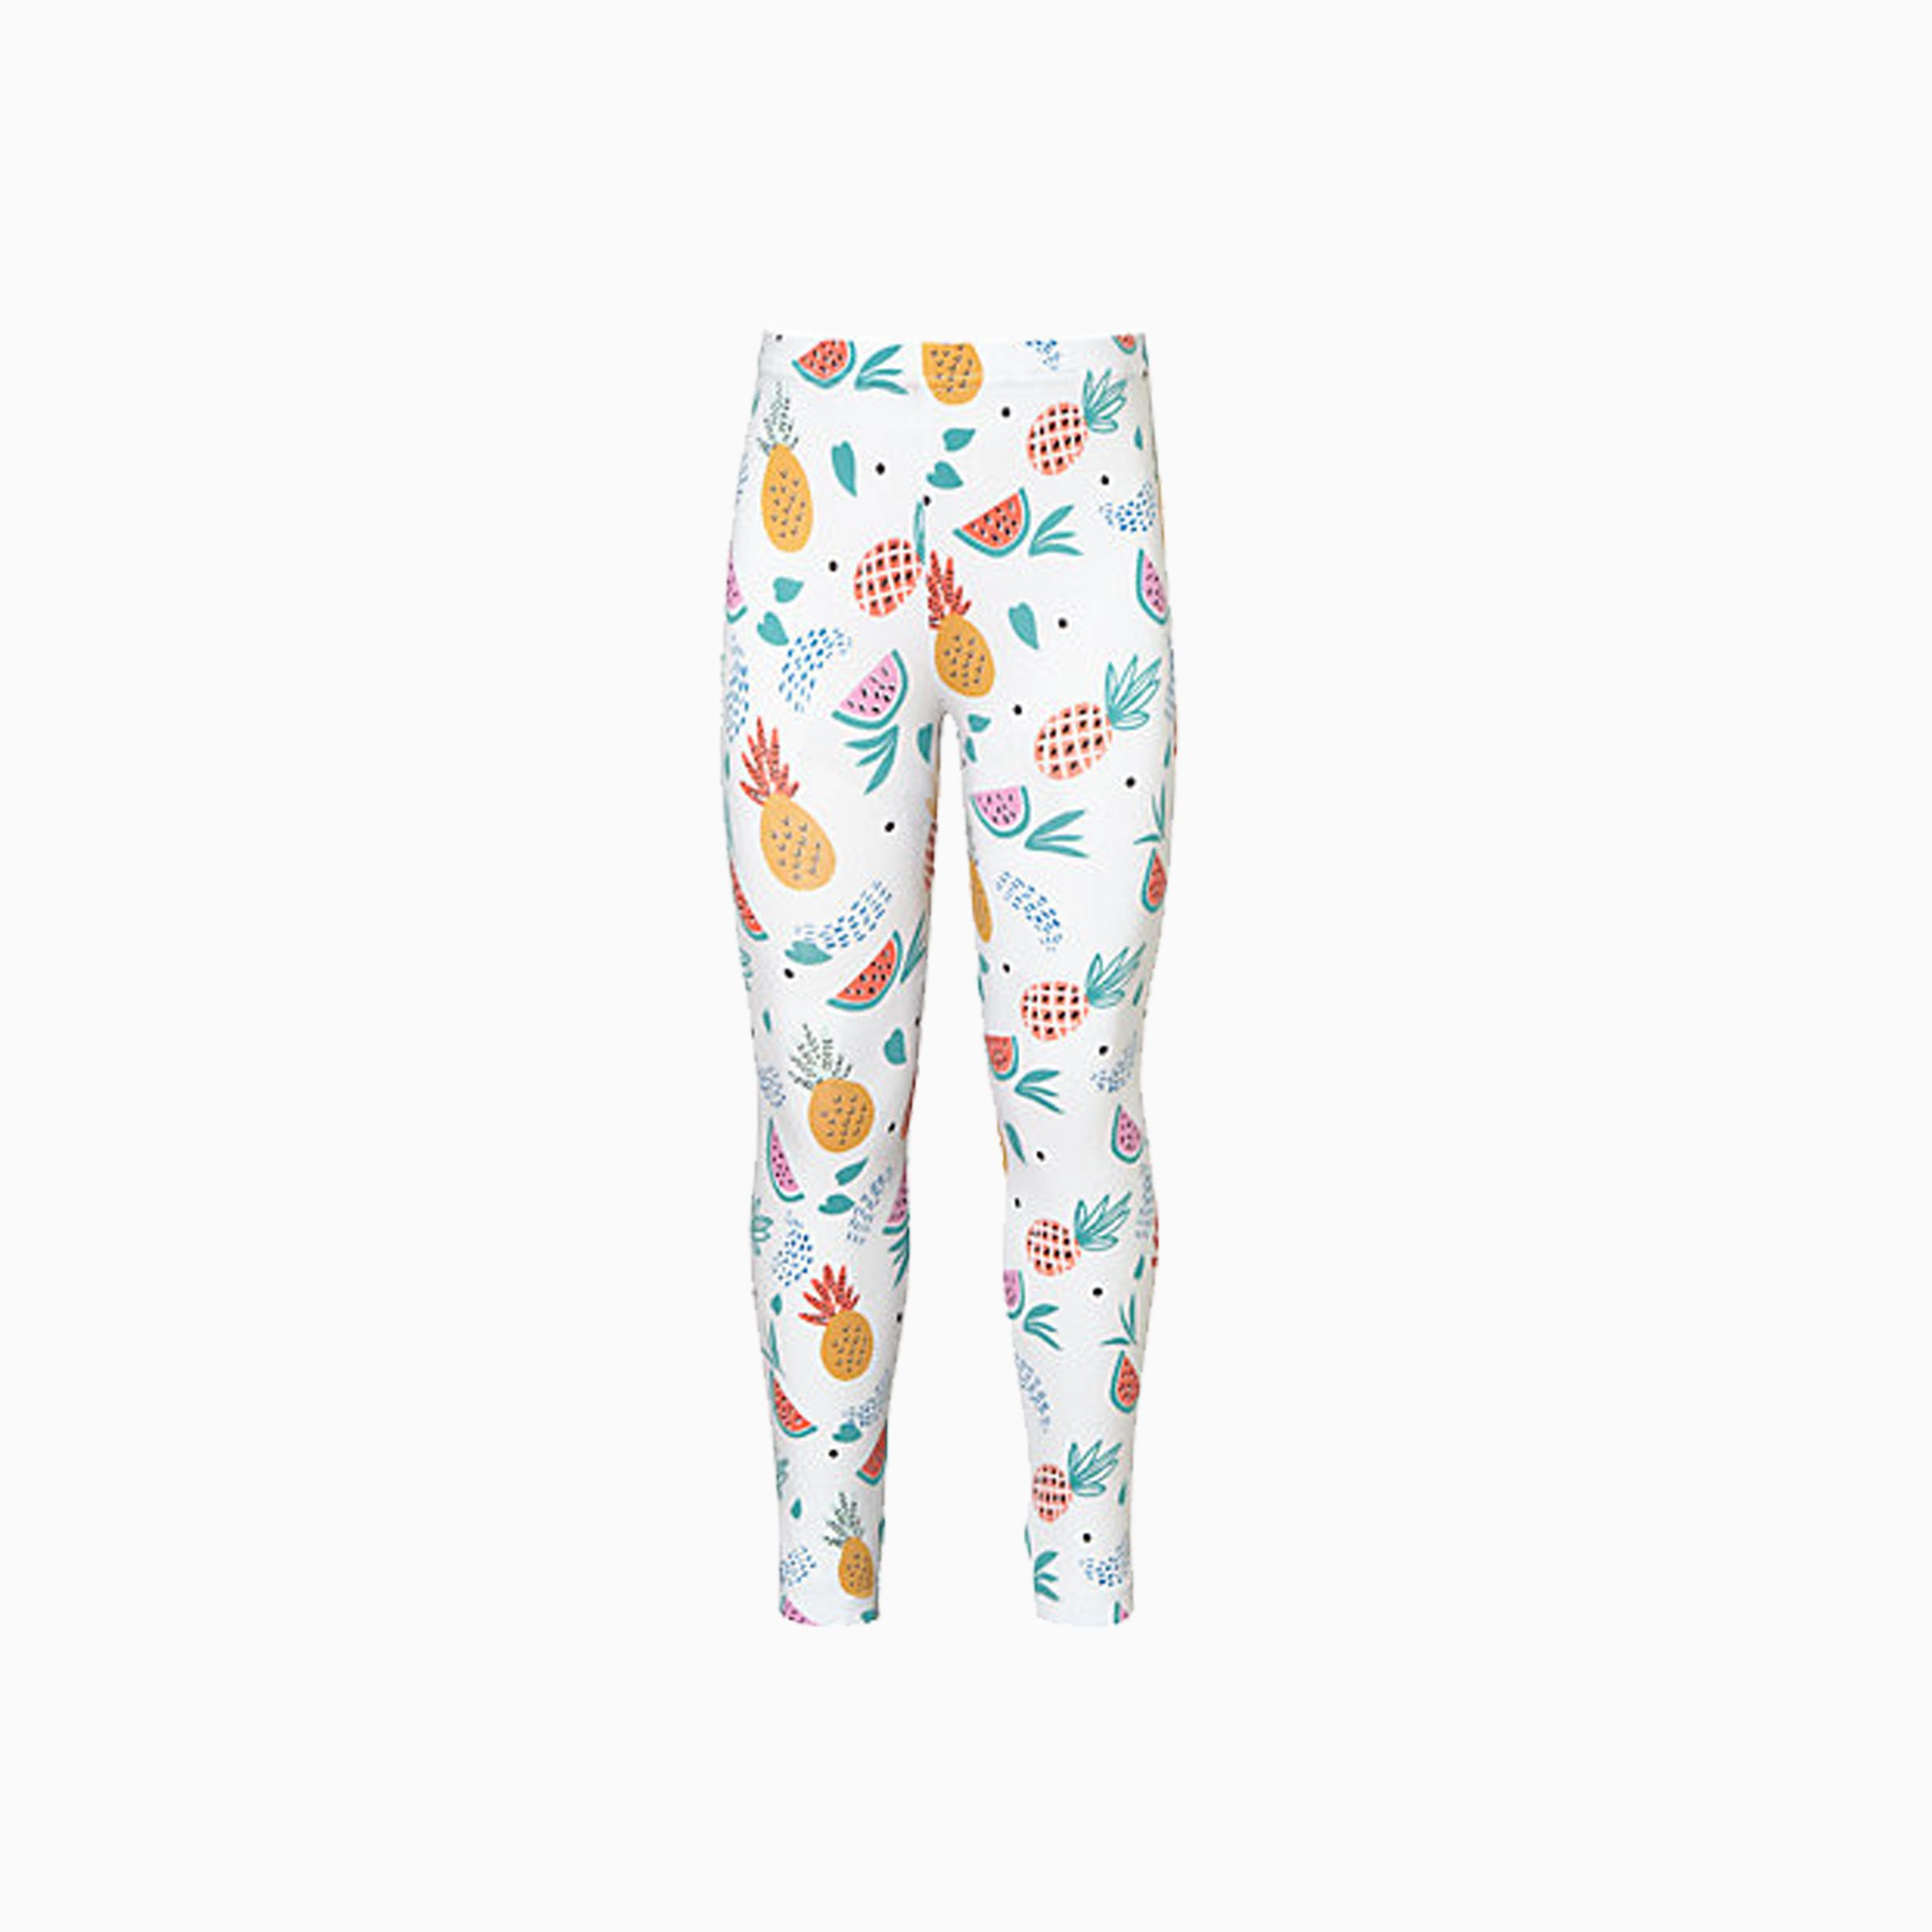 Today's top Boden coupons: 30% Off Full Price Styles + 10% Off New Season Styles + Free Standard Shipping And Free Returns on Orders Over $ Find 26 Boden coupon codes and coupon codes for December on RetailMeNot.